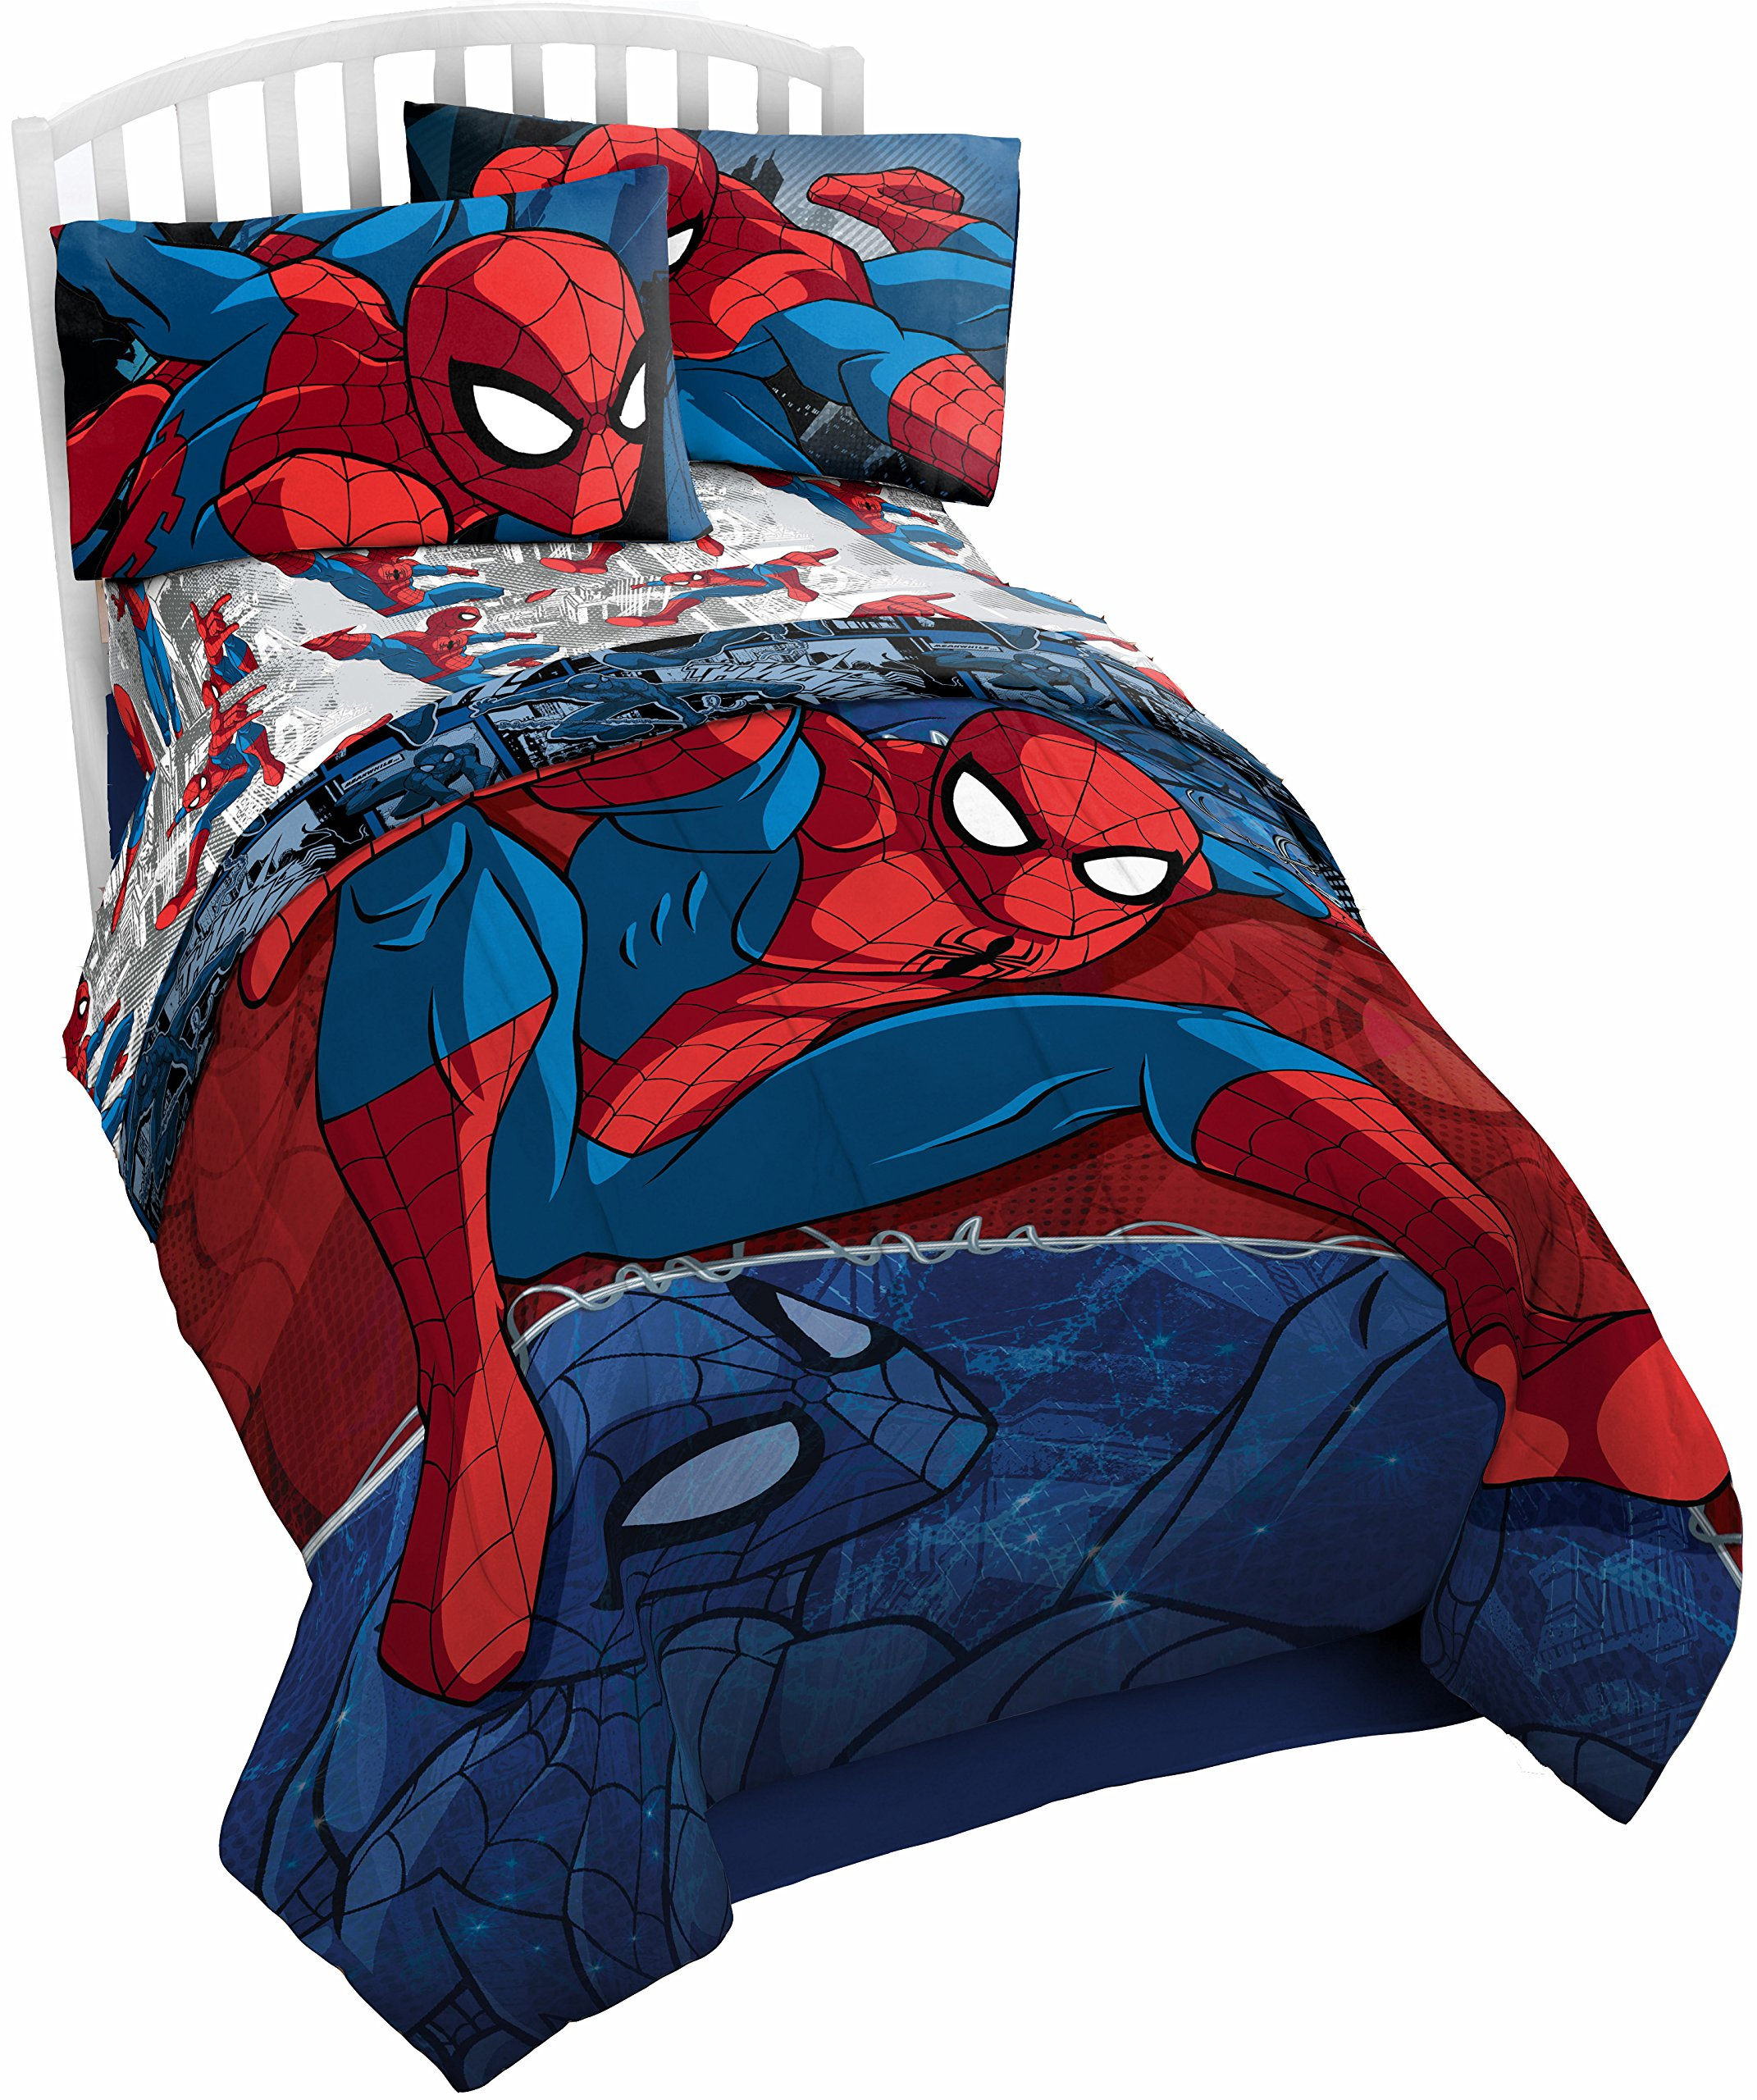 Marvel Spiderman Burst Twin Comforter - Super Soft Kids Reversible Bedding features Spiderman - Fade Resistant Polyester Microfiber Fill (Official Product)